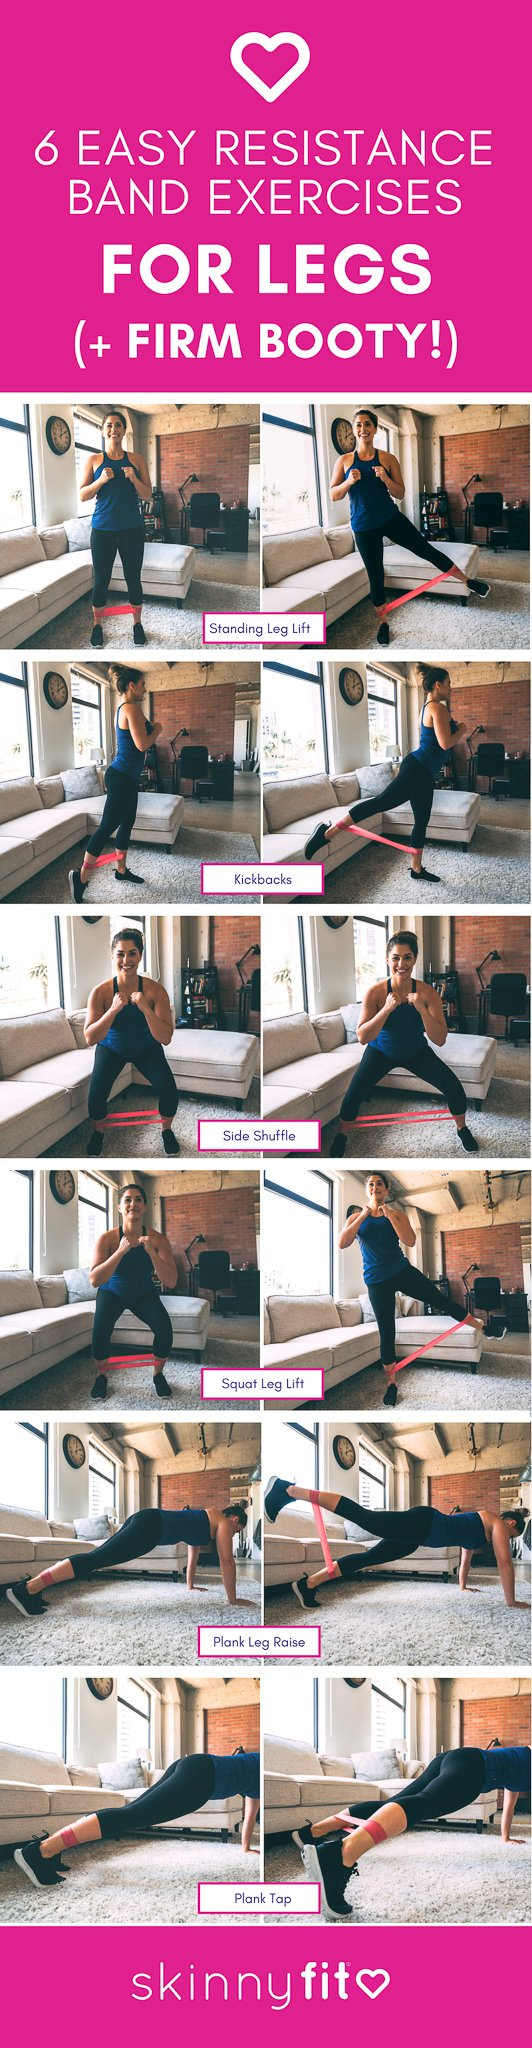 resistance band exercises for legs